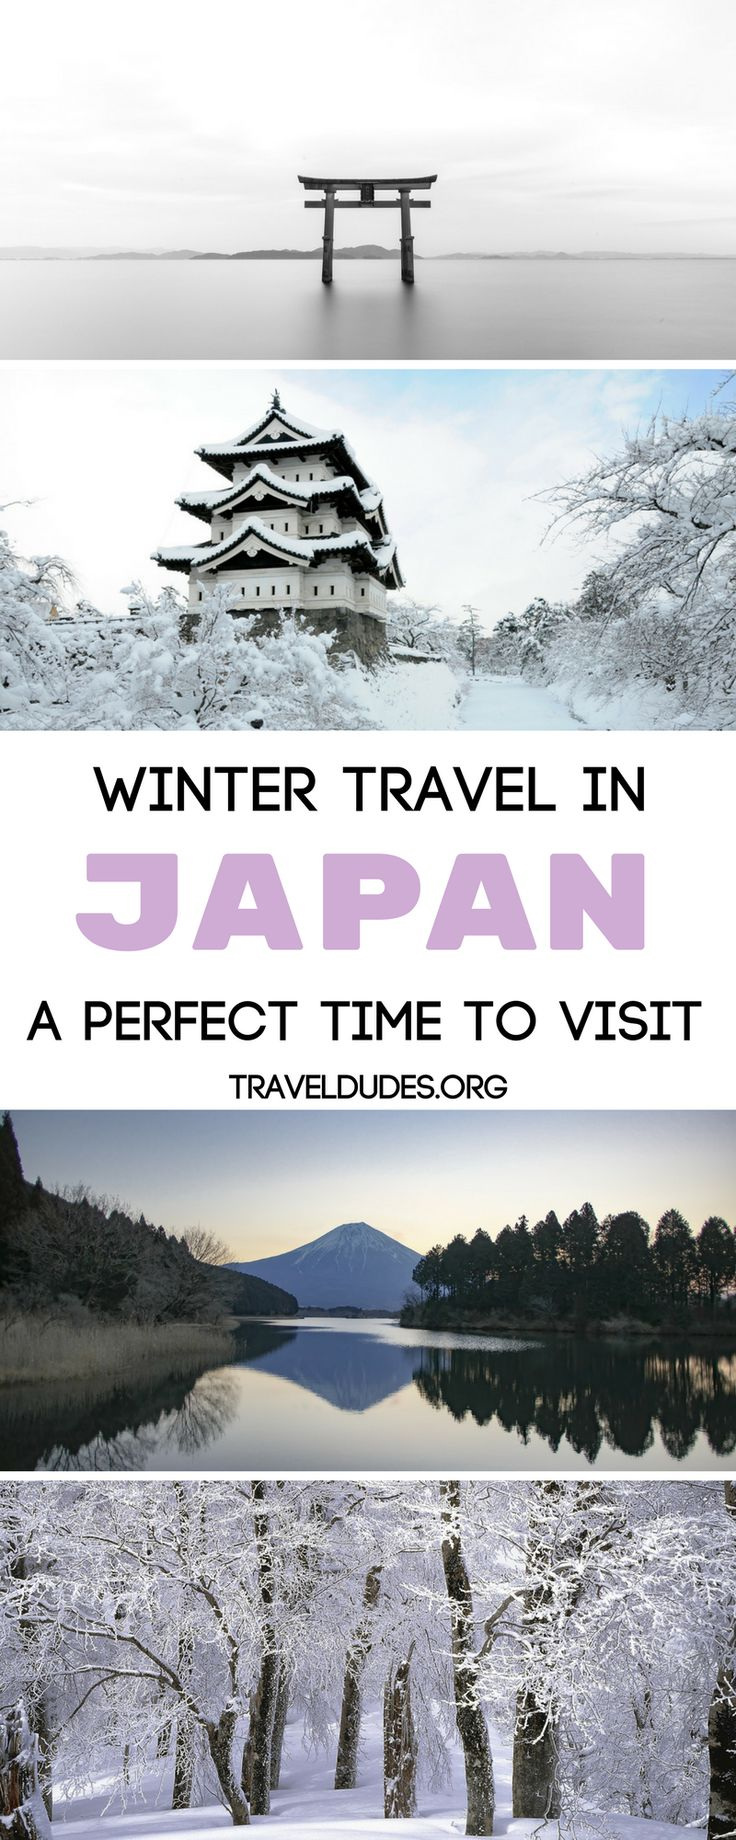 Japan is a completely underrated destination when it comes to winter travel. This guide includes eleven benefits of visiting Japan during winter. Fewer crowds, warm sake, snow monkeys and onsen hot springs are just a few! Travel to Japan. Travel Dudes Social Travel Community #Japan